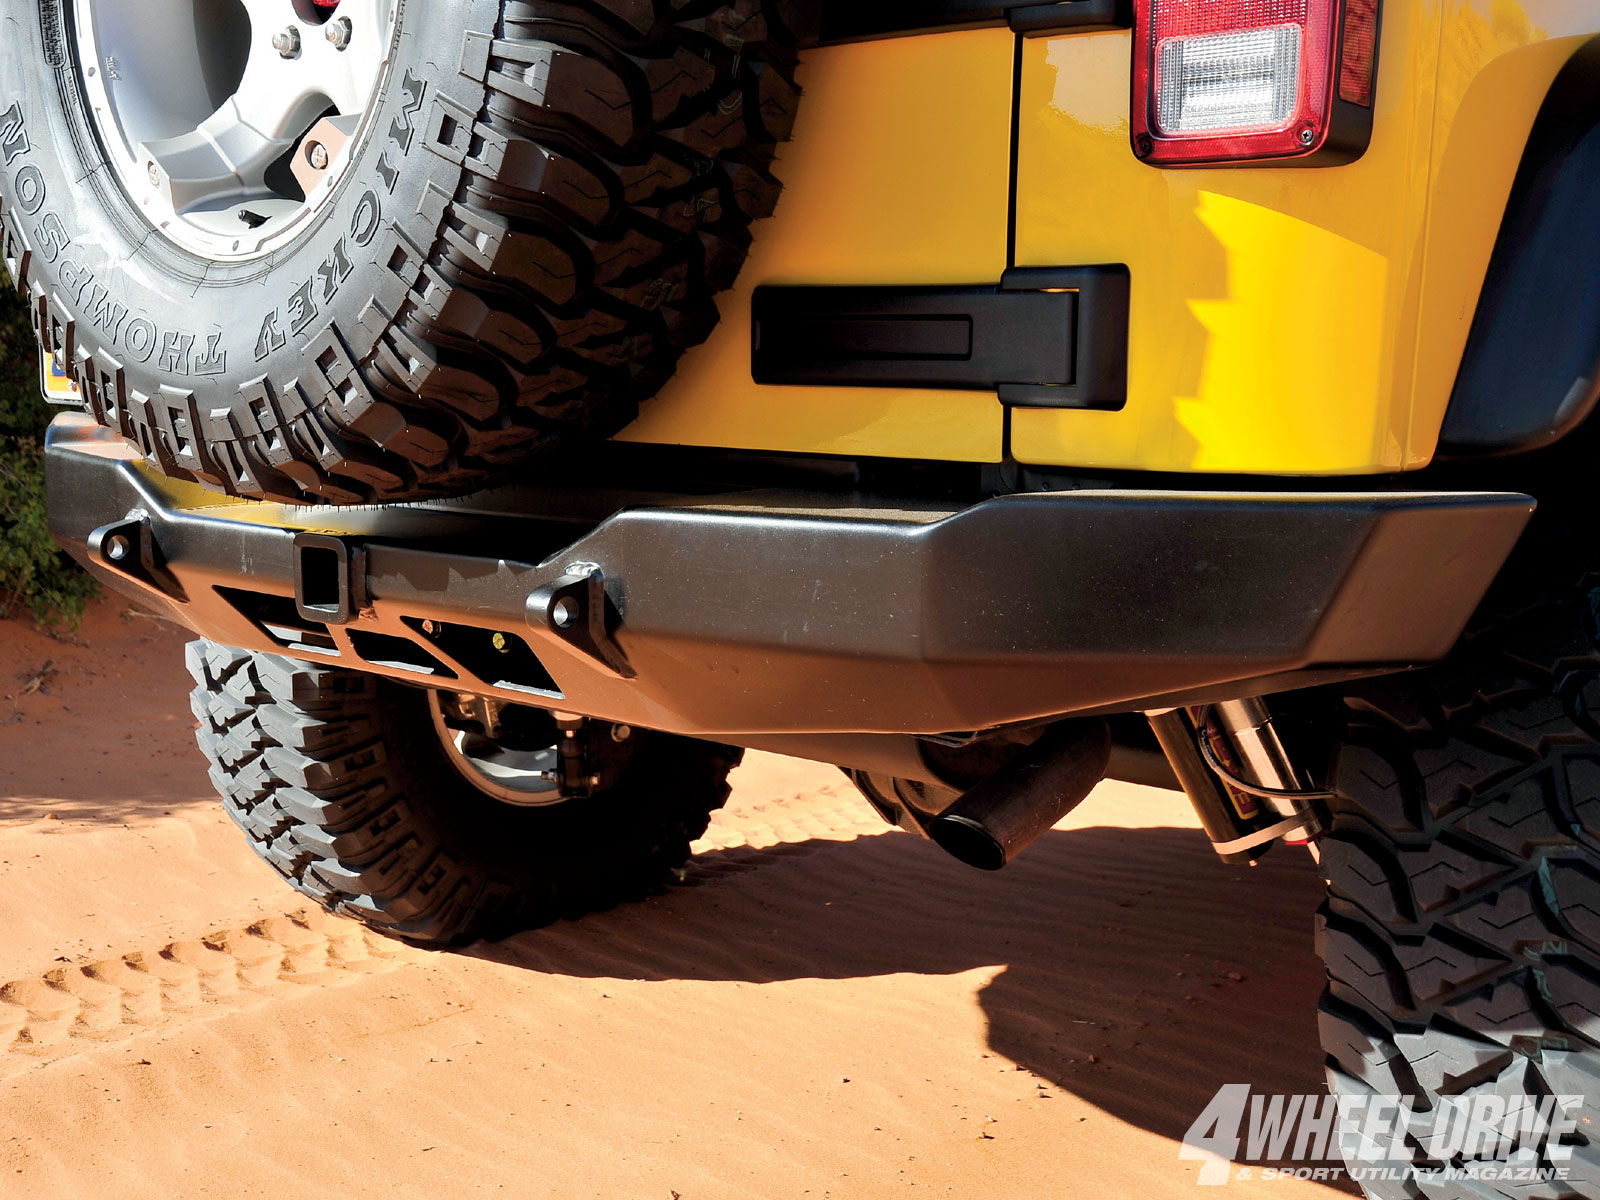 1101 4wd 13+2008 jeep wrangler JK rubicon+hanson enterprises rear bumper